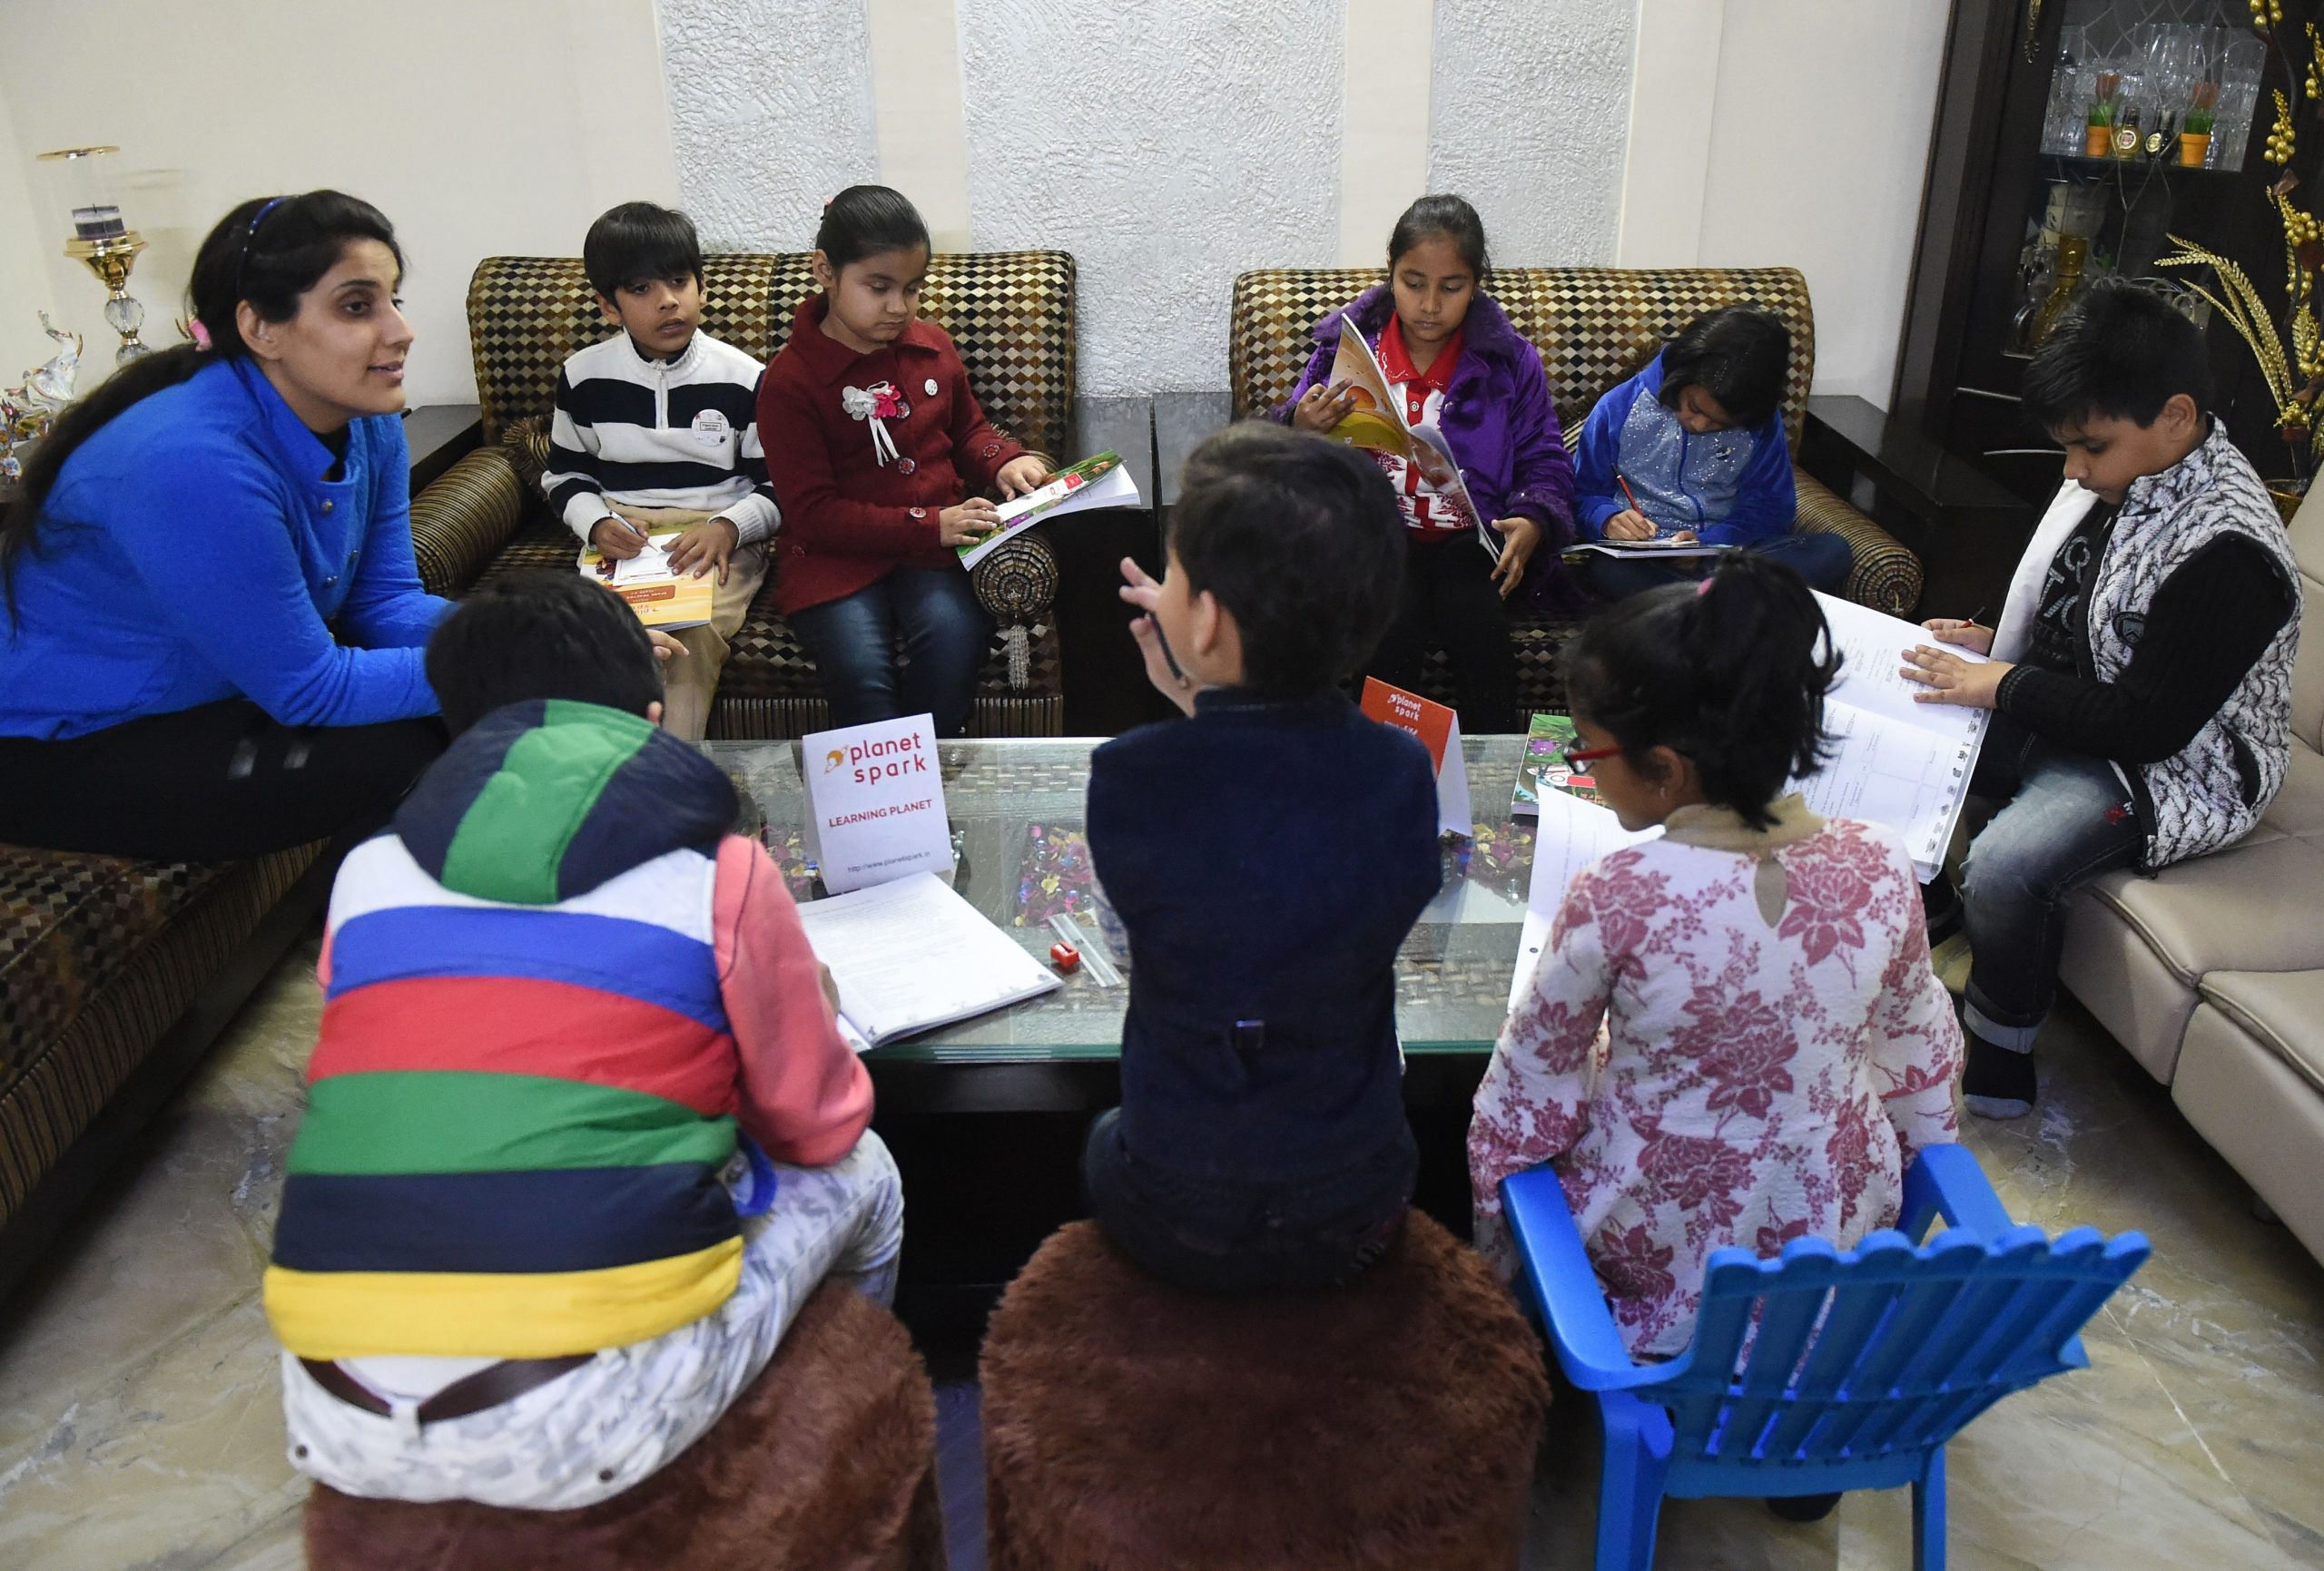 """In this photograph taken on February 13, 2019, Ruchi Taneja (L) teaches a group of Indian children studying with an app created by Planet Sparks that uses """"gamified"""" teaching methods at a tuition centre in New Delhi. - From a multi-billion-dollar education startup to wired-up mannequins, technology is helping to revolutionise the way Indian schoolchildren are learning -- provided their parents can afford it. (Photo by Money SHARMA / AFP) / To go with 'INDIA-ECONOMY-EDUCATION-TECHNOLOGY-AMAZON-BYJU',FOCUS by Vishal MANVE        (Photo credit should read MONEY SHARMA/AFP via Getty Images)"""